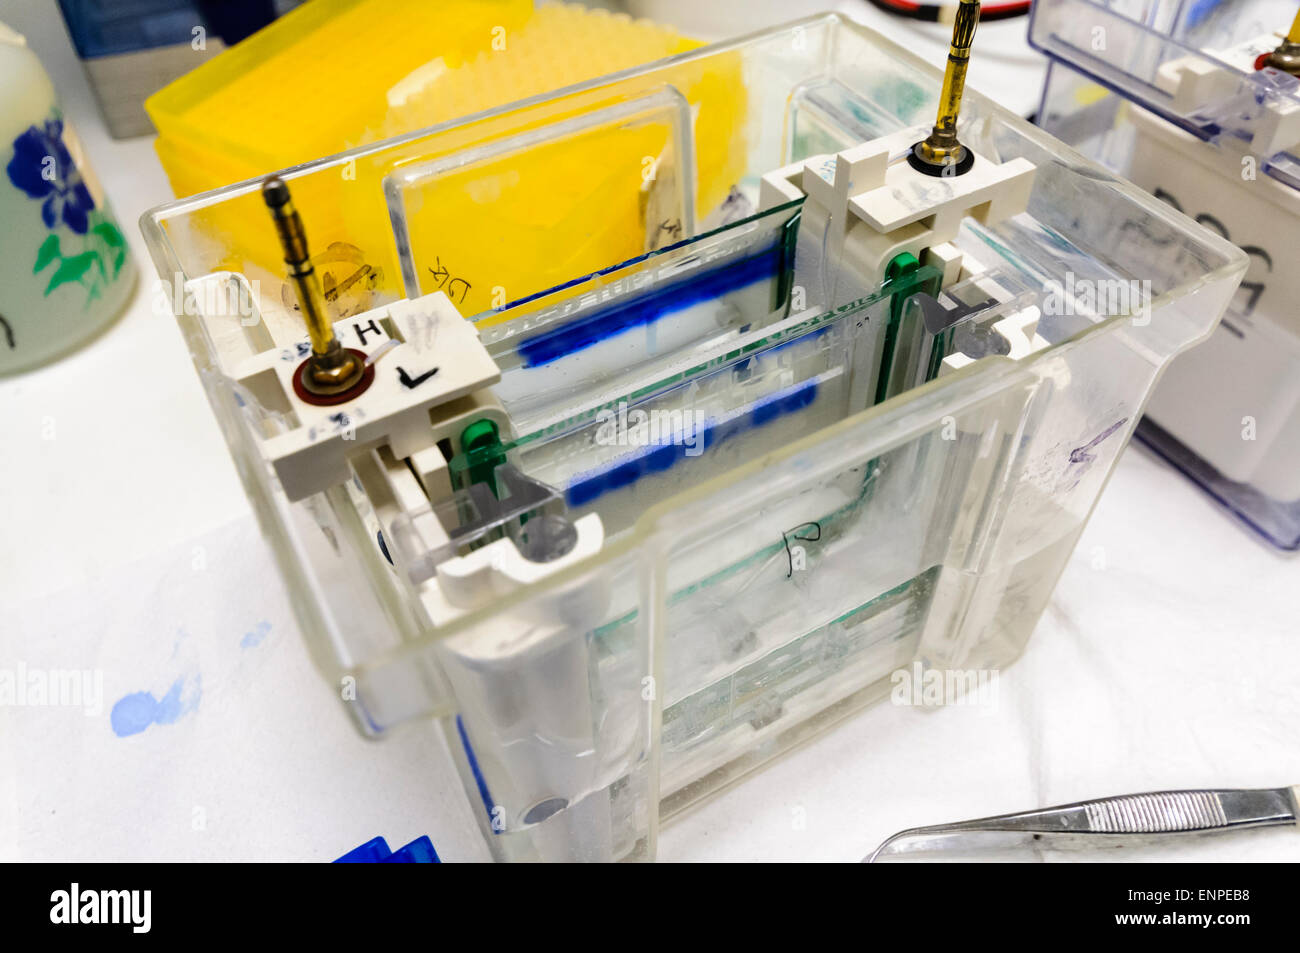 Western Blotting (blot, protein immunoblot) tank with samples loaded in a cancer research laboratory - Stock Image